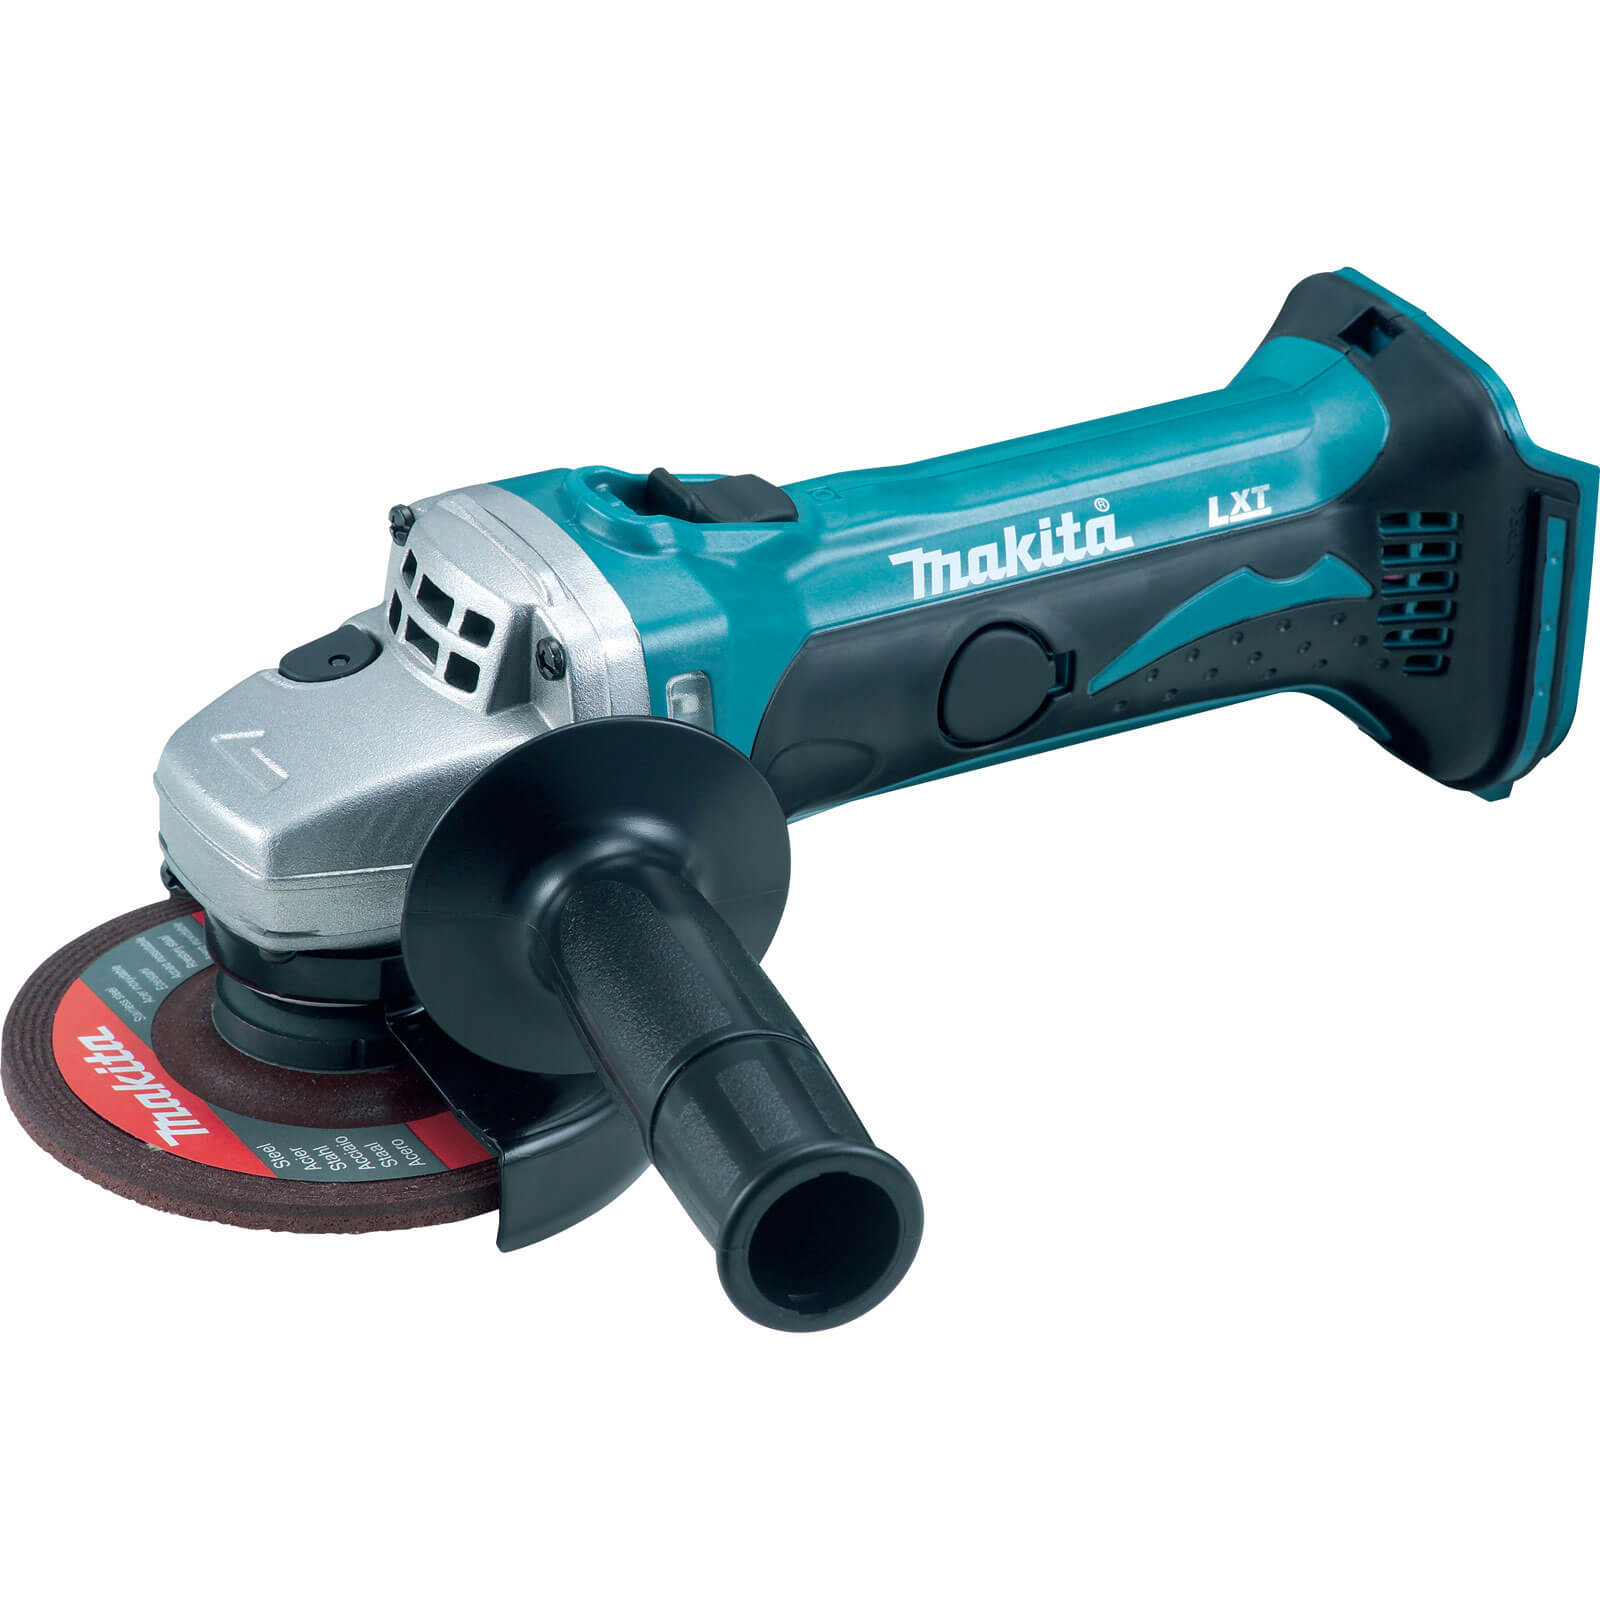 """Makita DGA452Z LXT 18v Cordless Angle Grinder 115mm / 4.5"""" Disc without Battery or Charger"""